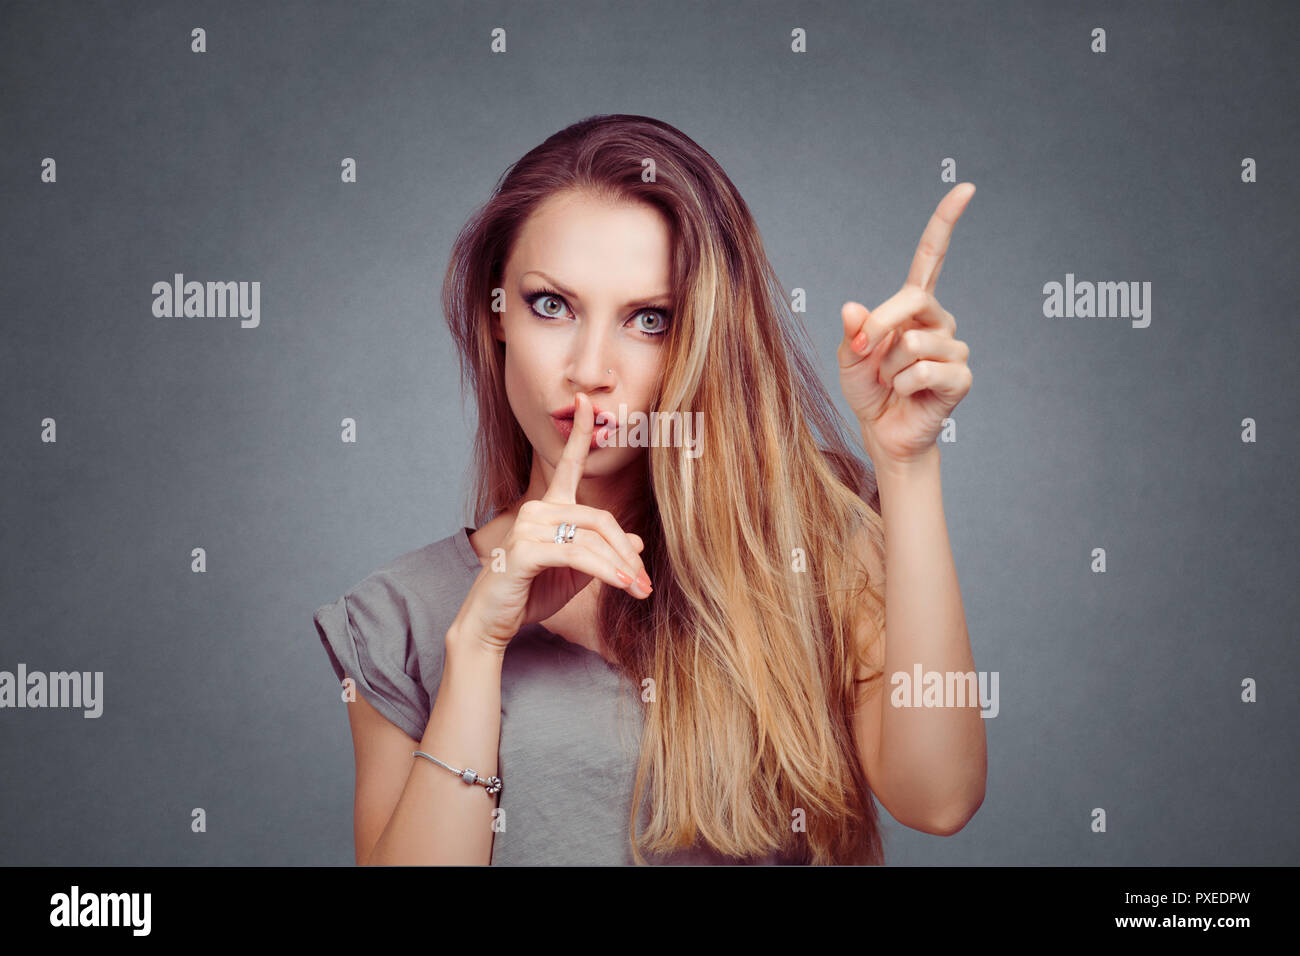 SHH. Angry woman showing shh, silence, hush sign gesture with one hand, attention listen to me with other hand isolated on gray grey studio wall Backg - Stock Image